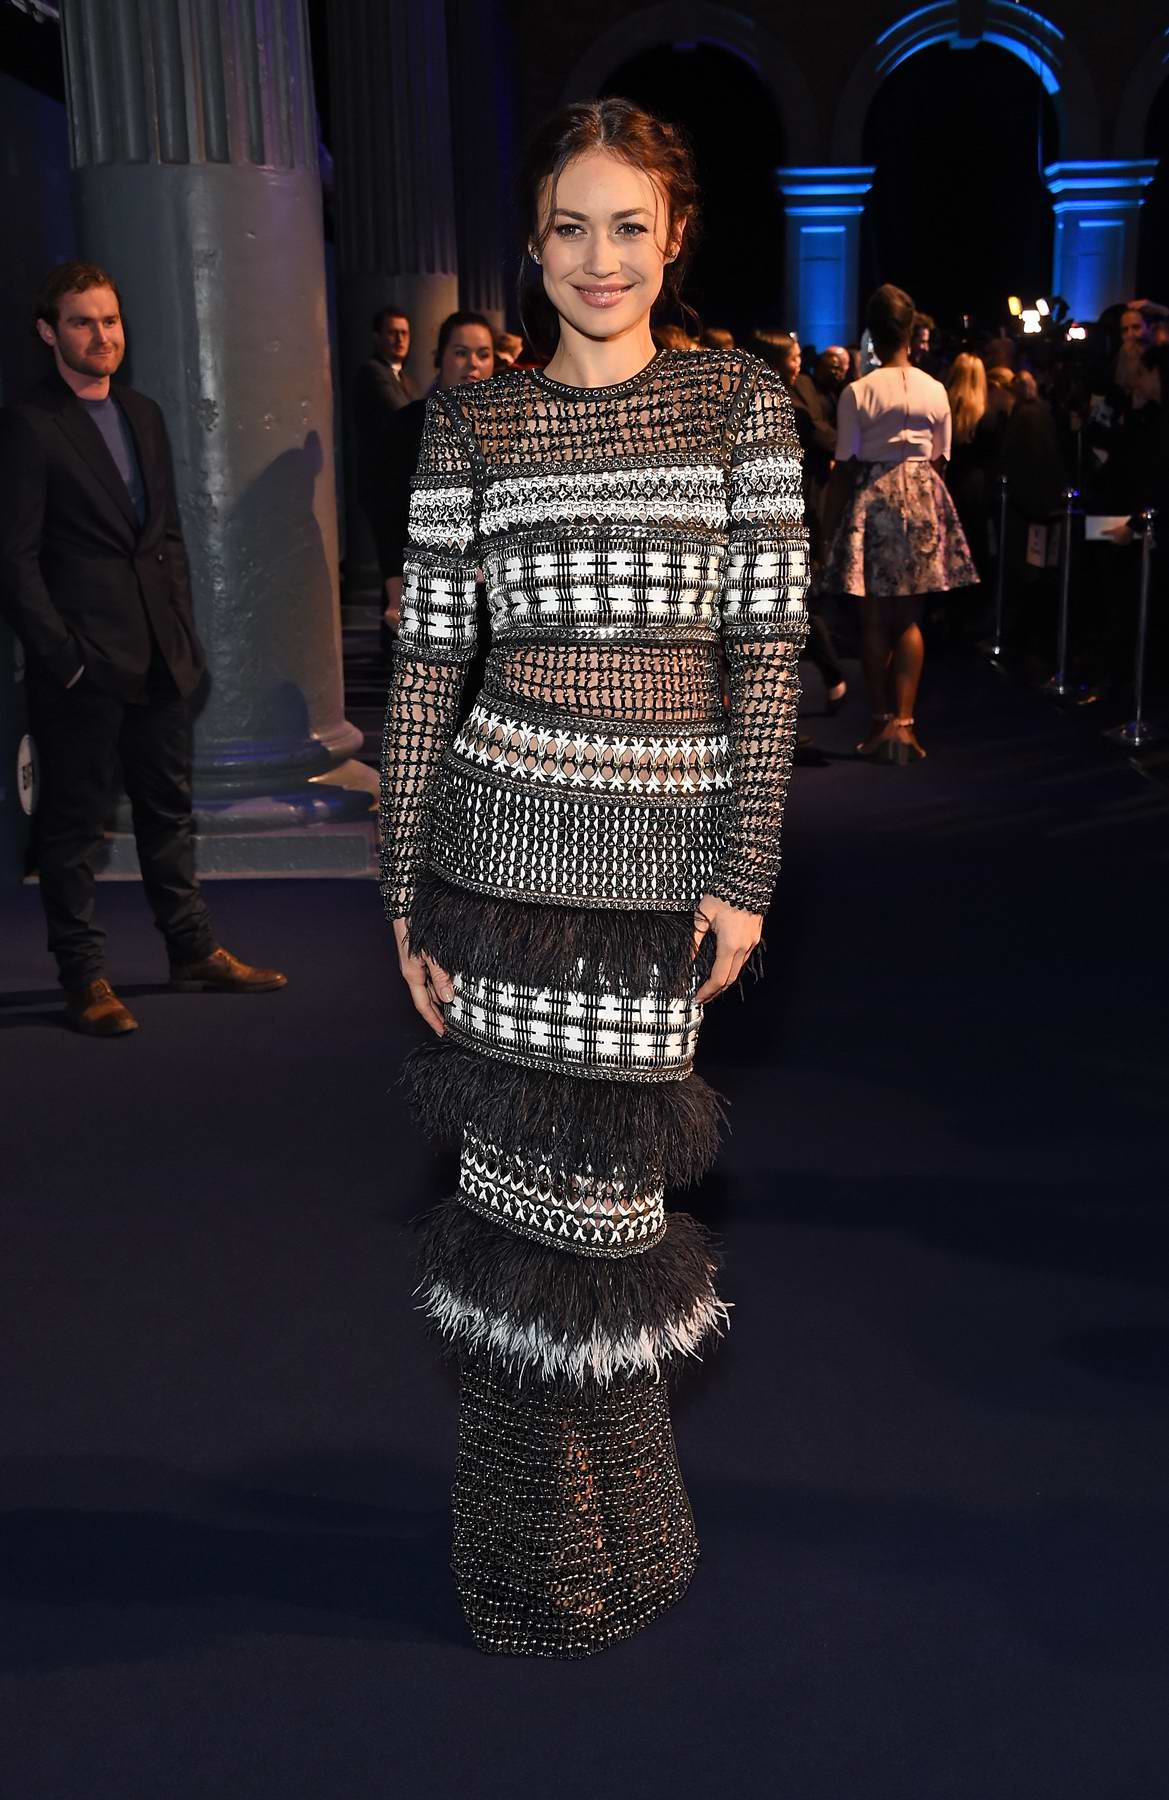 Olga Kurylenko attends British Independent Film Awards in London